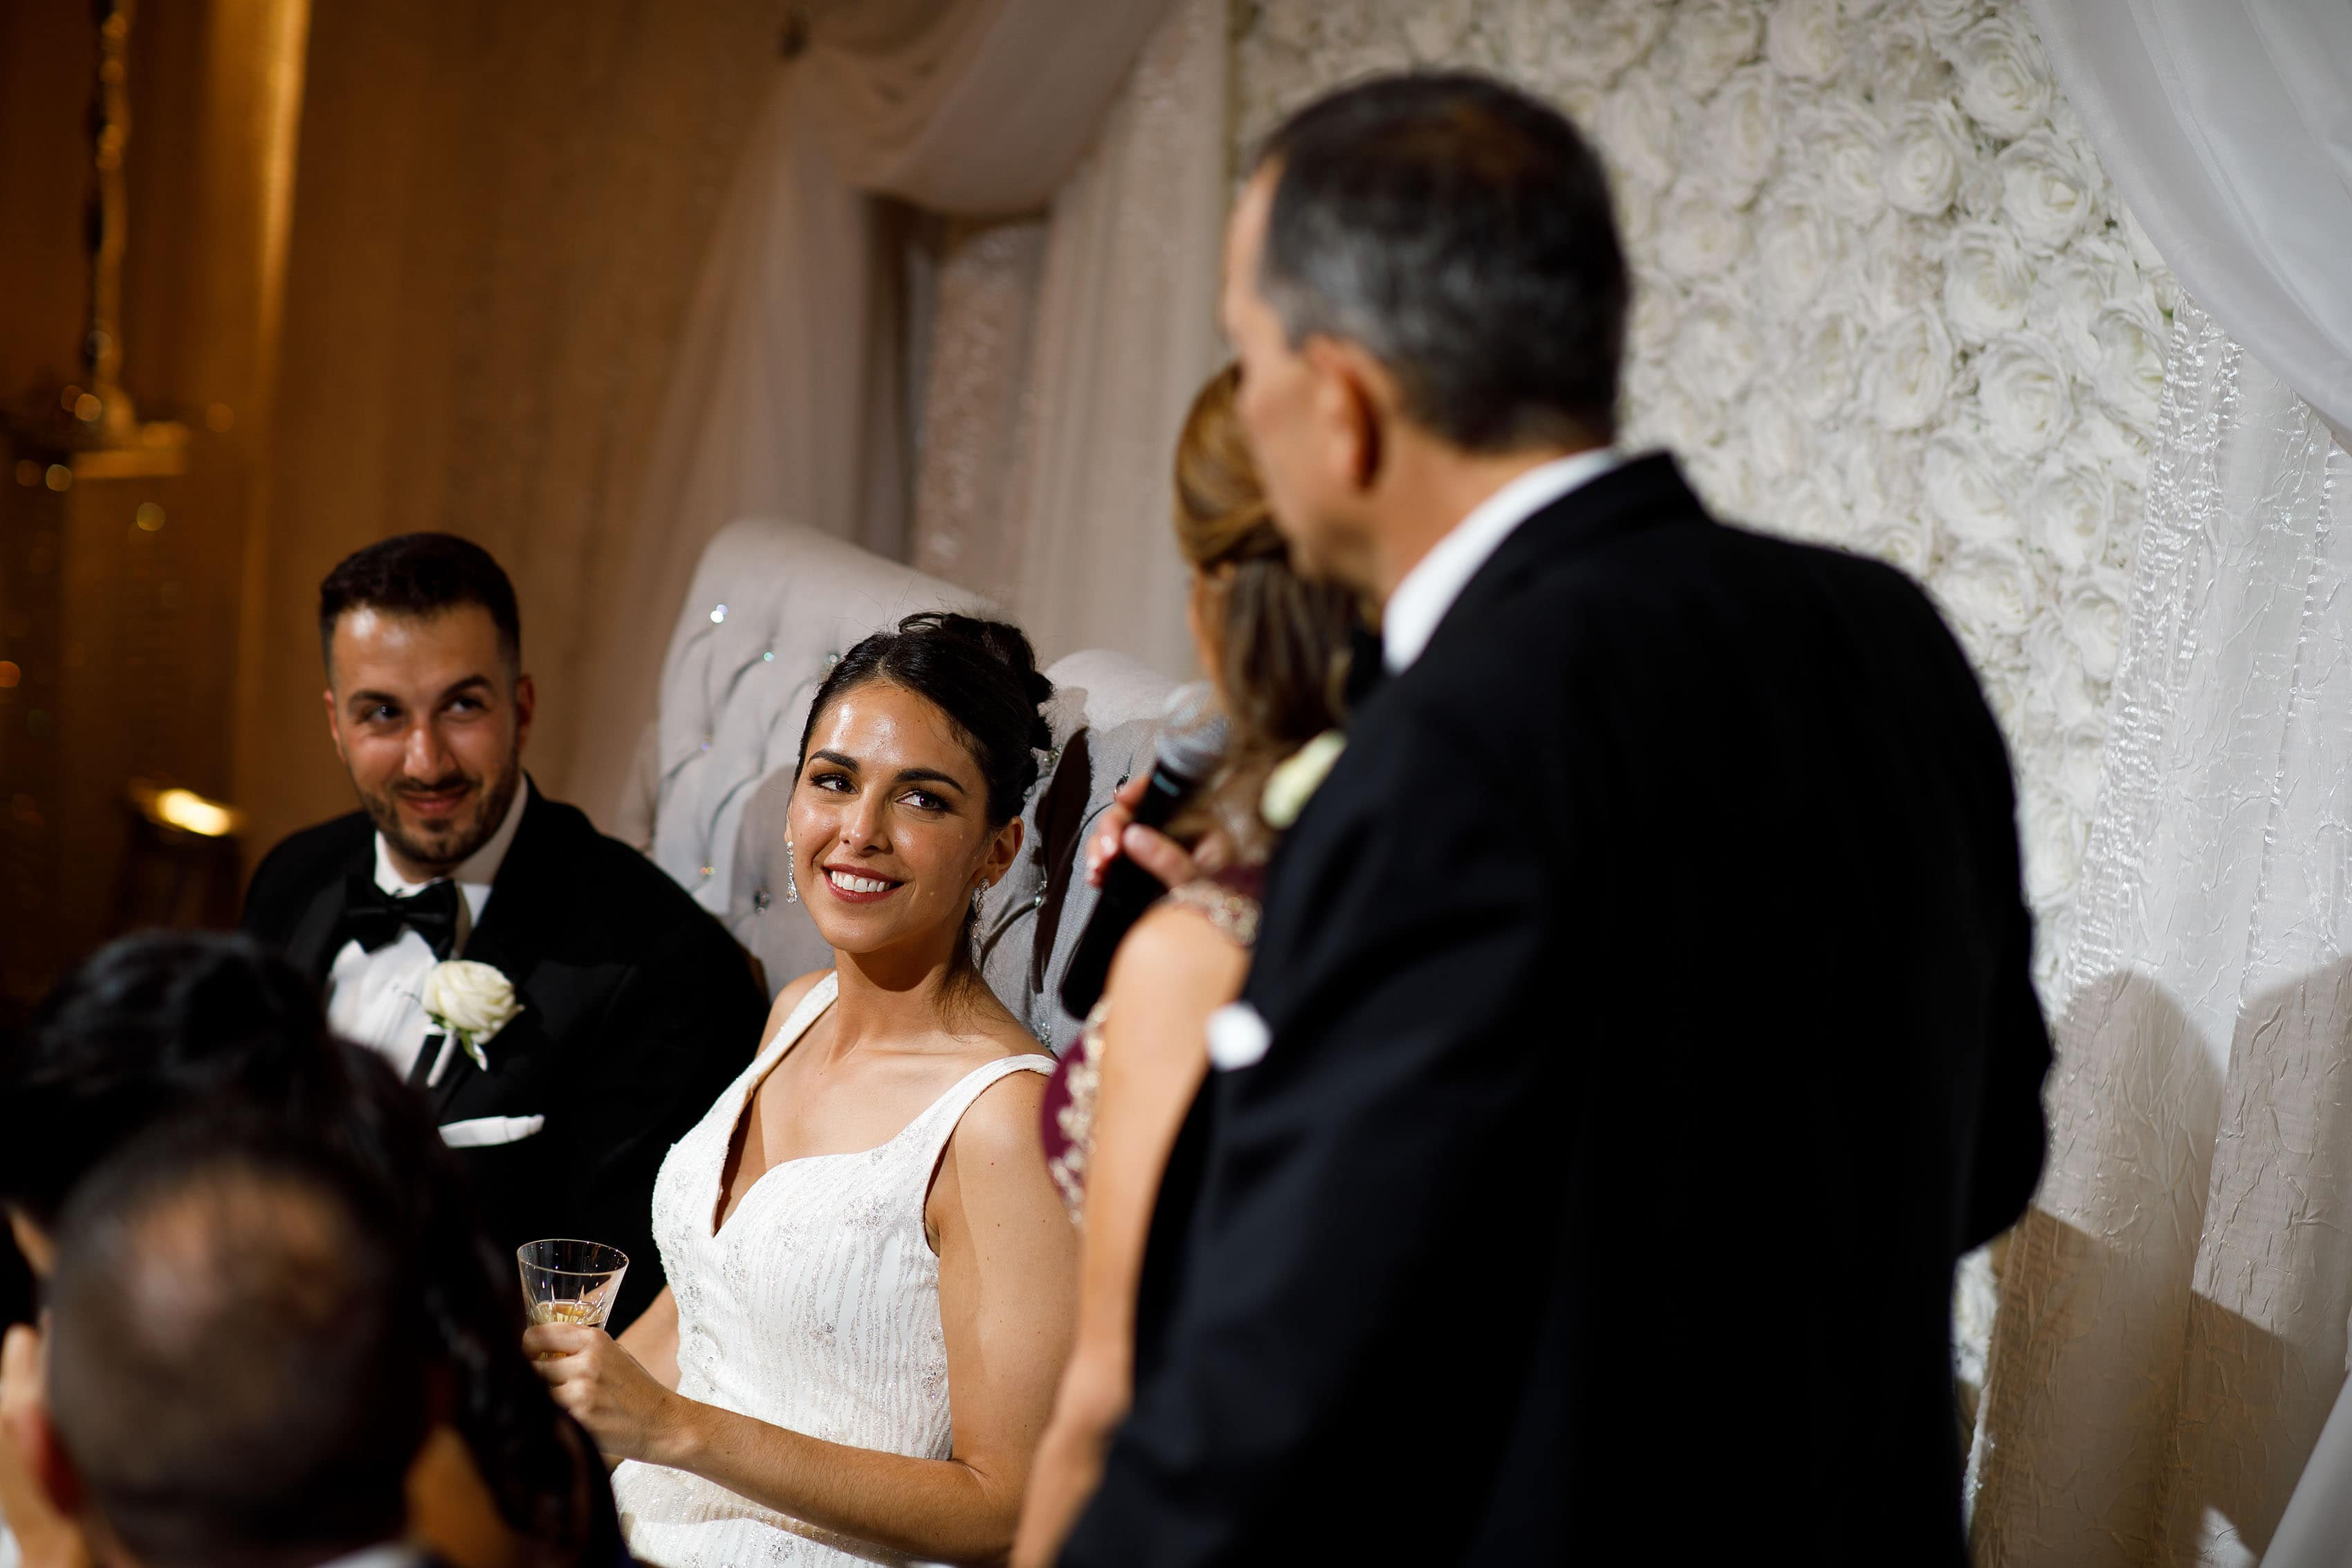 The bride smiles during a toast